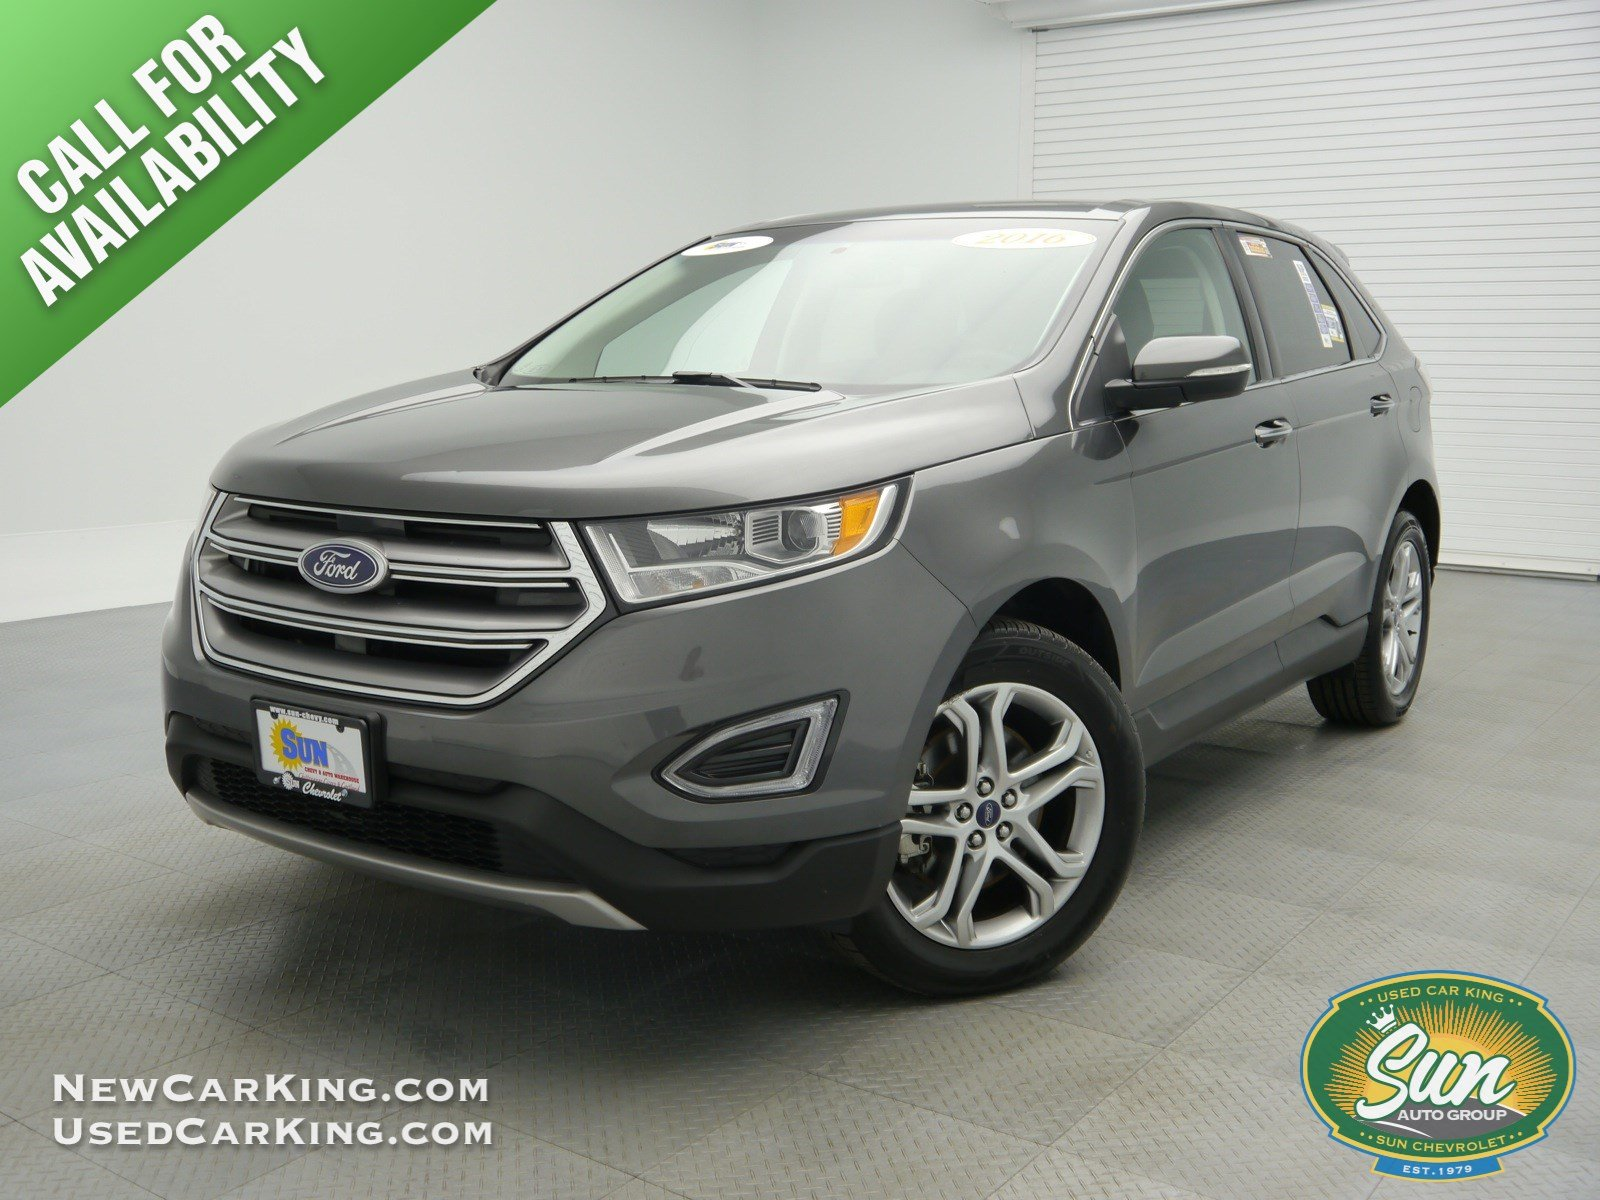 PreOwned Ford Edge Titanium AWD Sport Utility Cortland - Sport vehicles 2016